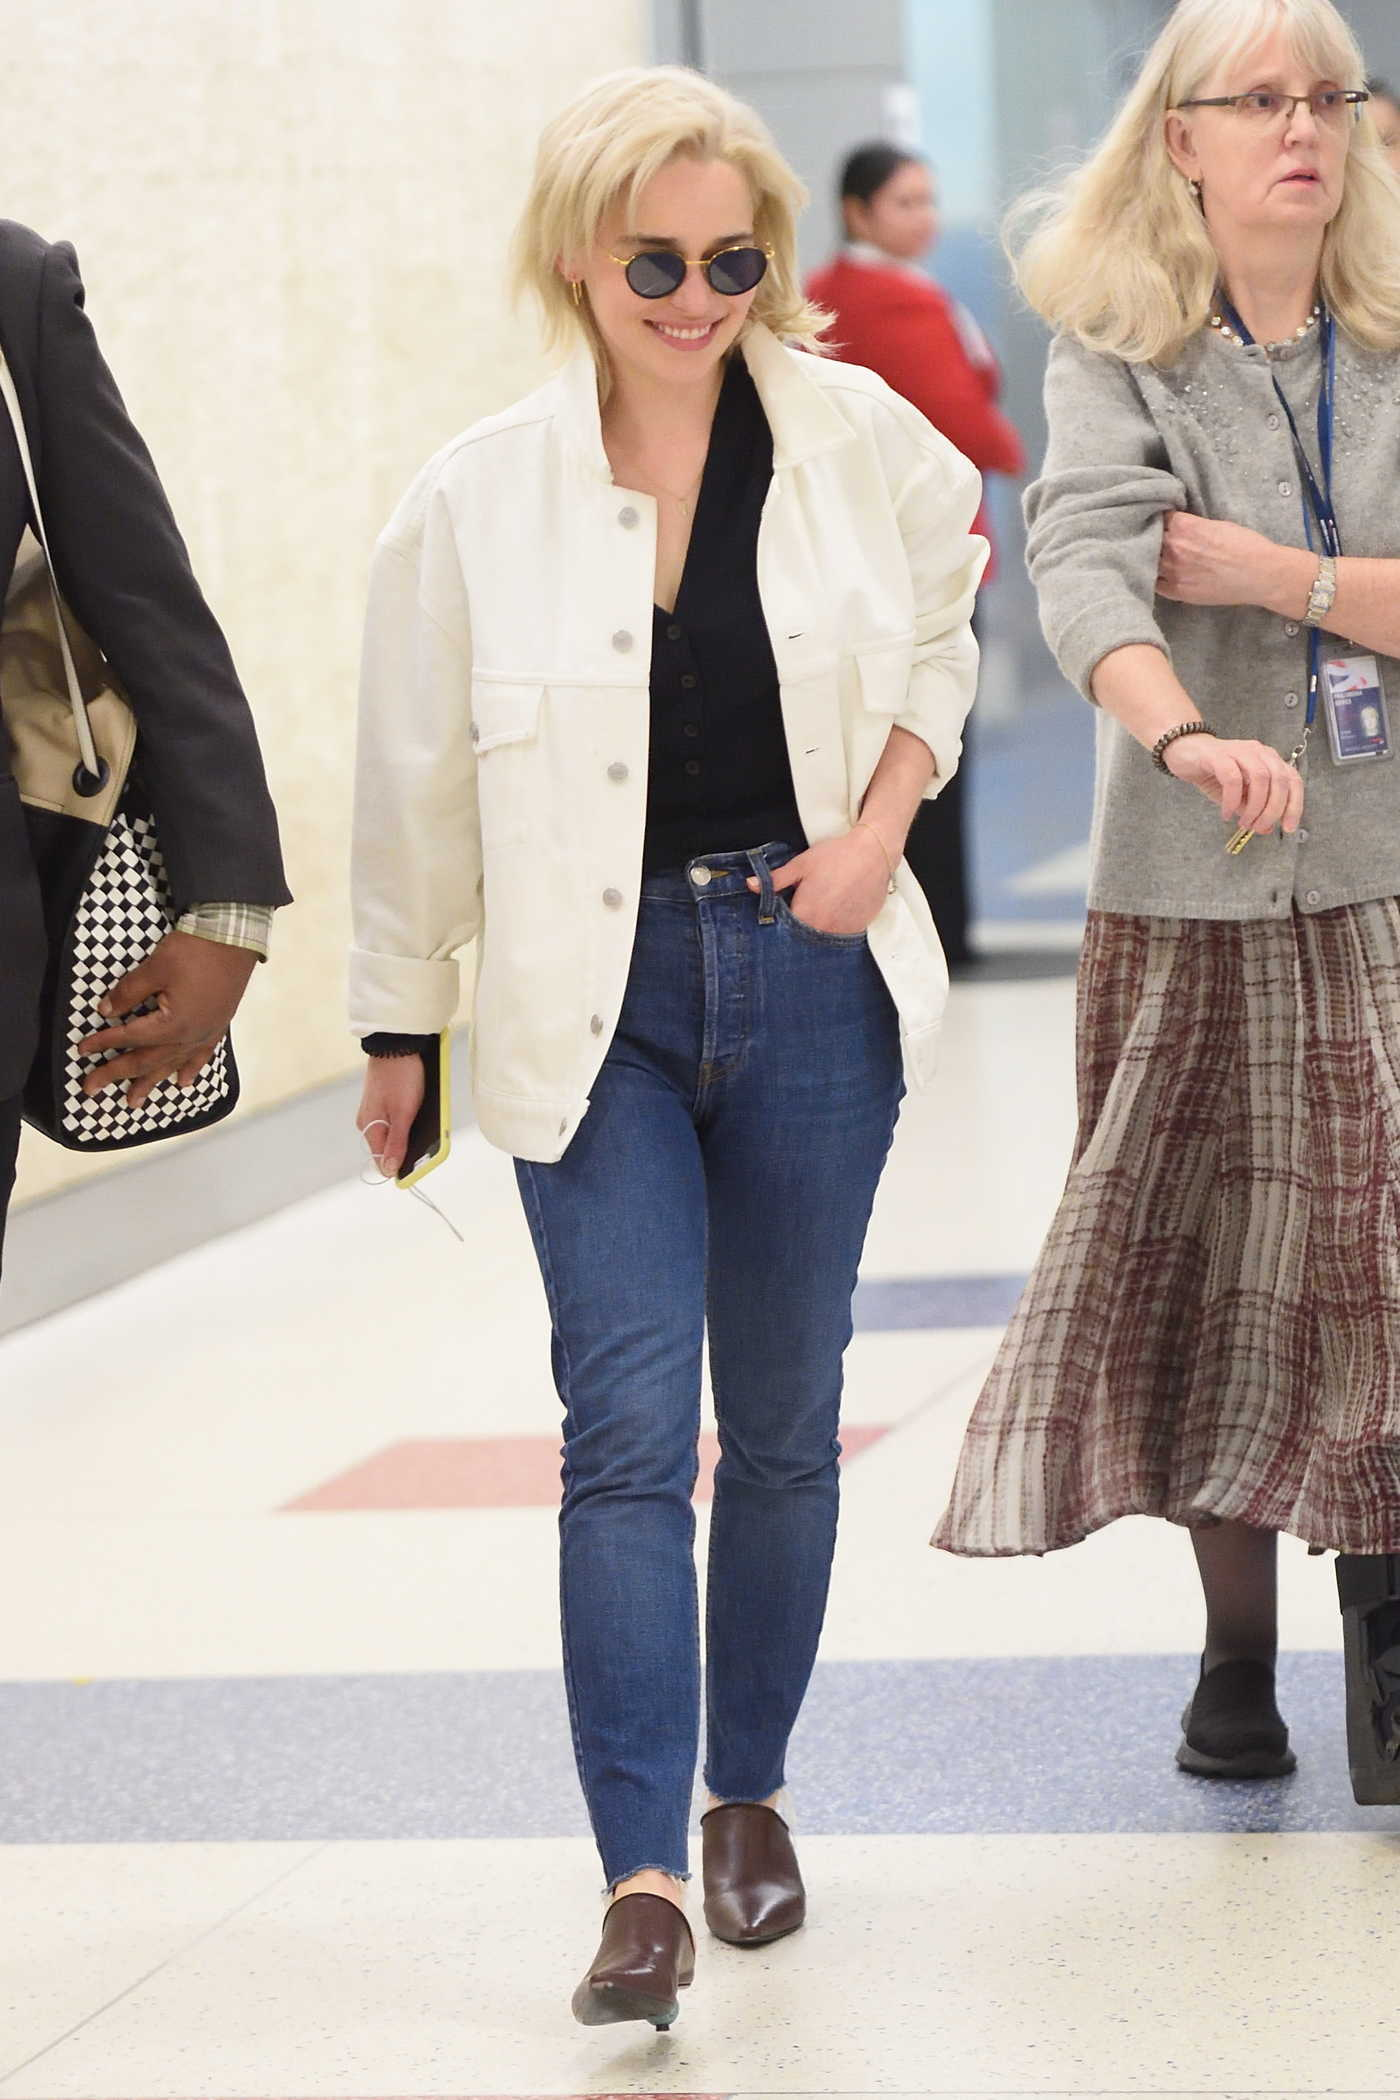 Emilia Clarke Arrives at JFK Airport in New York City 05/05/2018